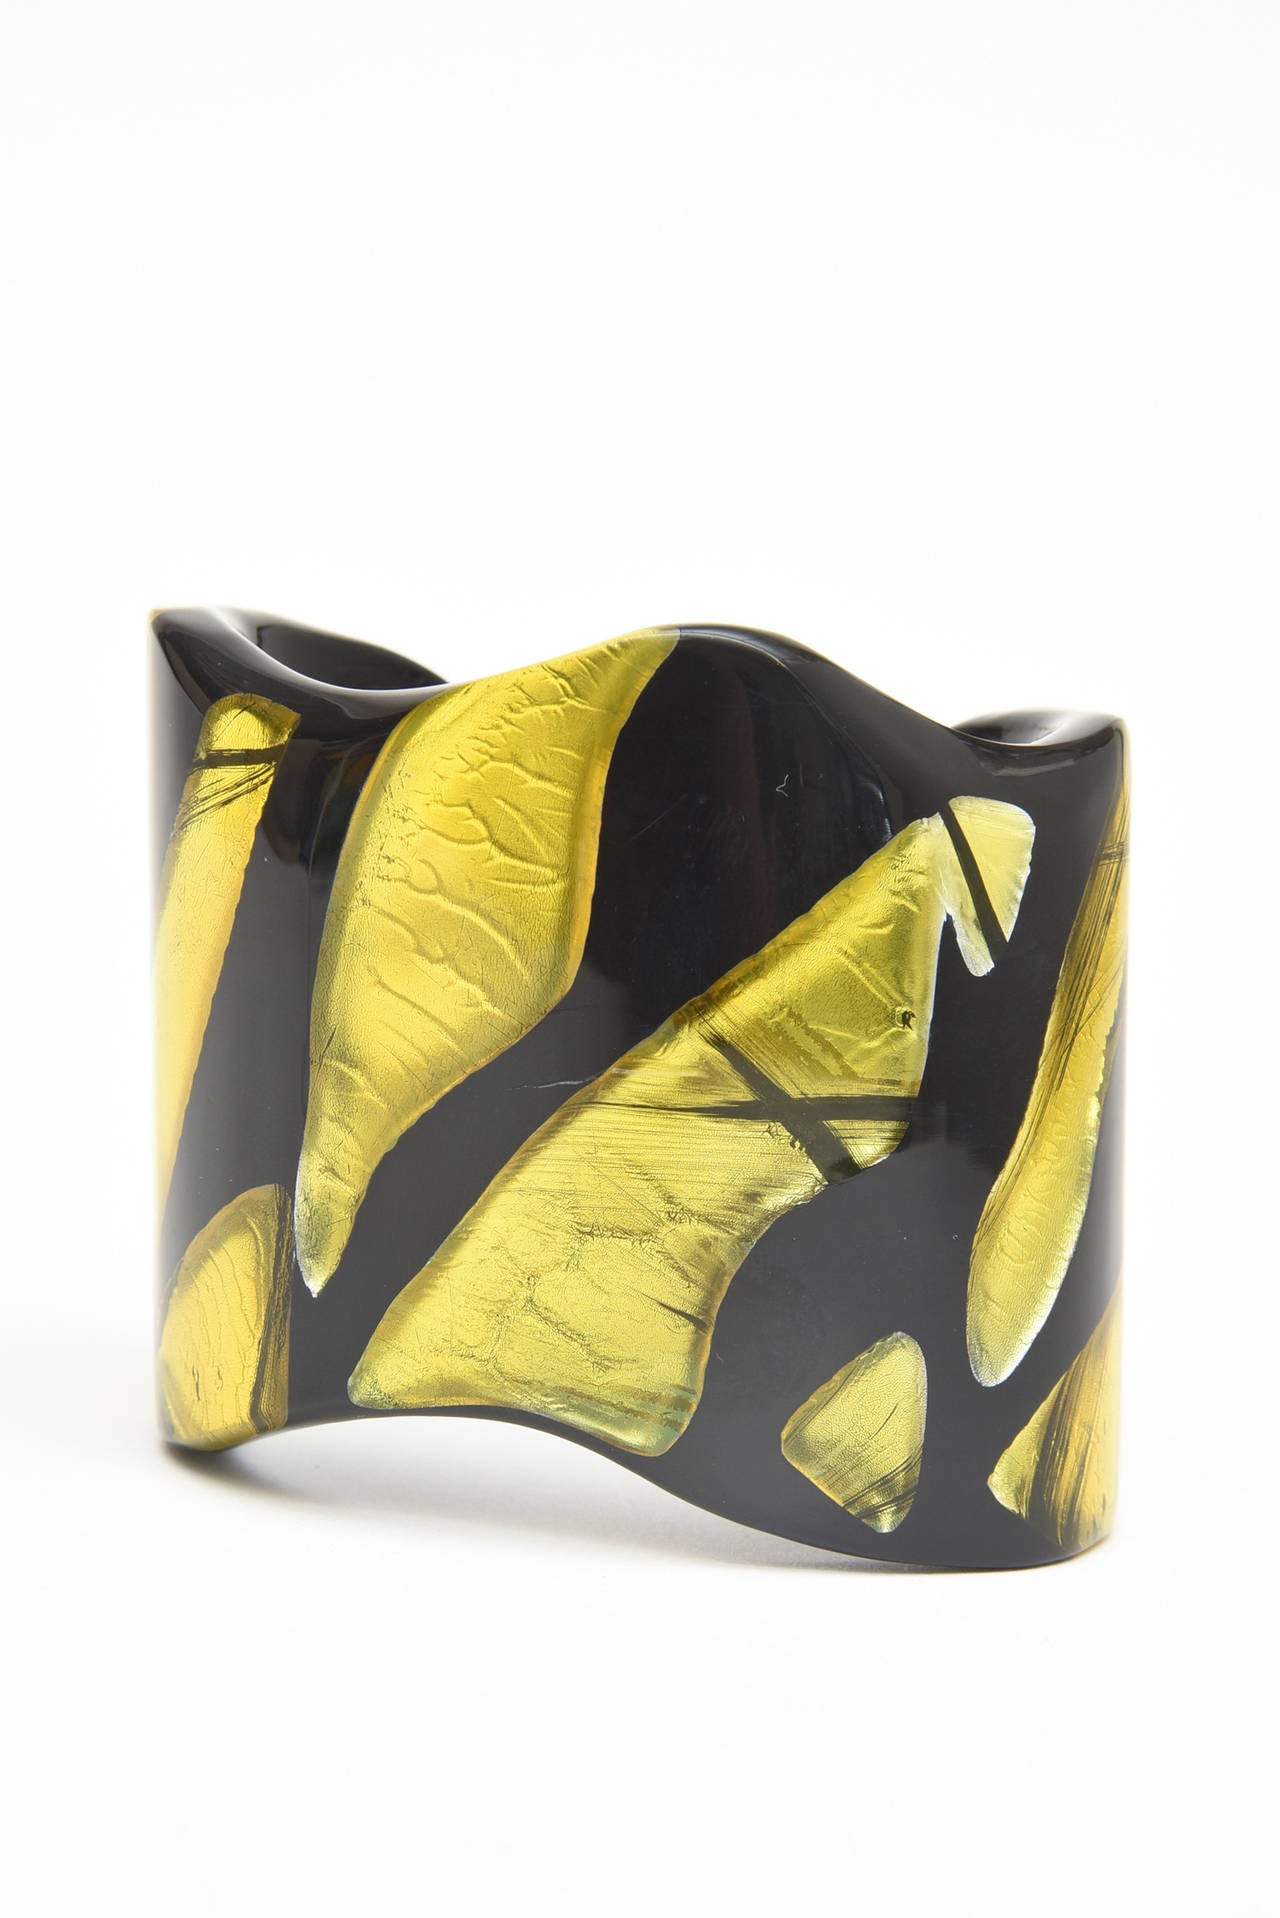 Frank Vigneri Signed Plexiglass Sculptural Cuff Bracelet Italian  For Sale 1